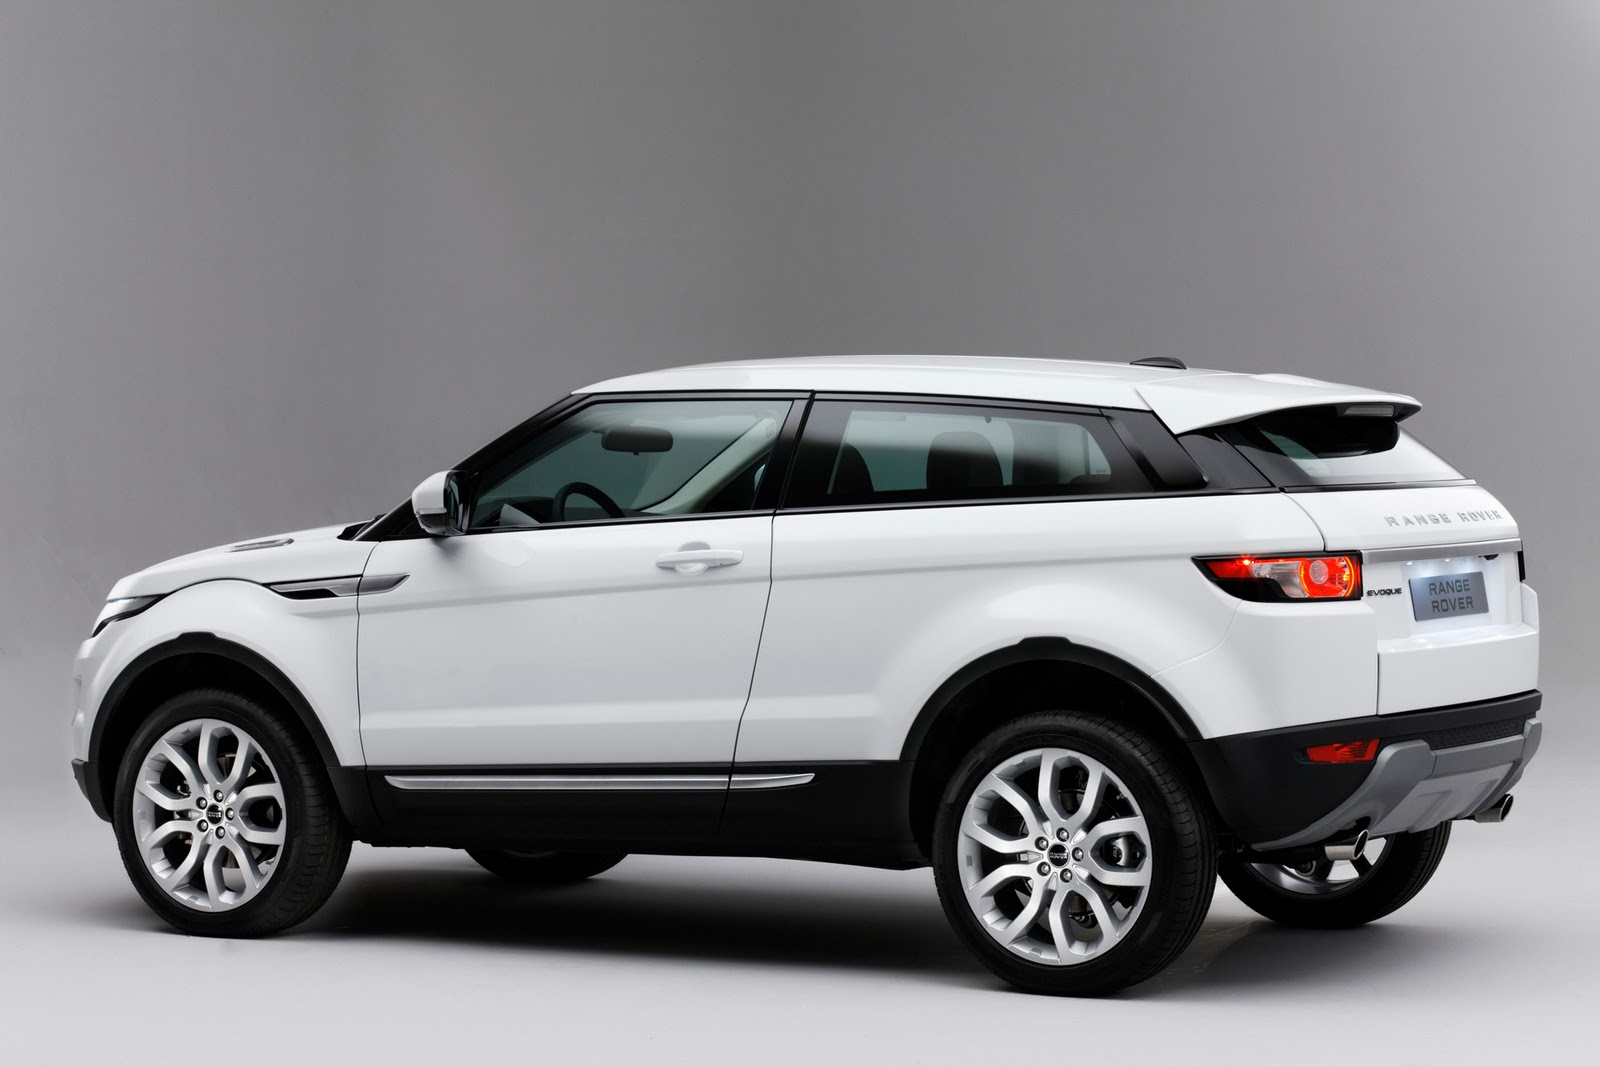 cool car wallpapers 2012 land rover evoque. Black Bedroom Furniture Sets. Home Design Ideas